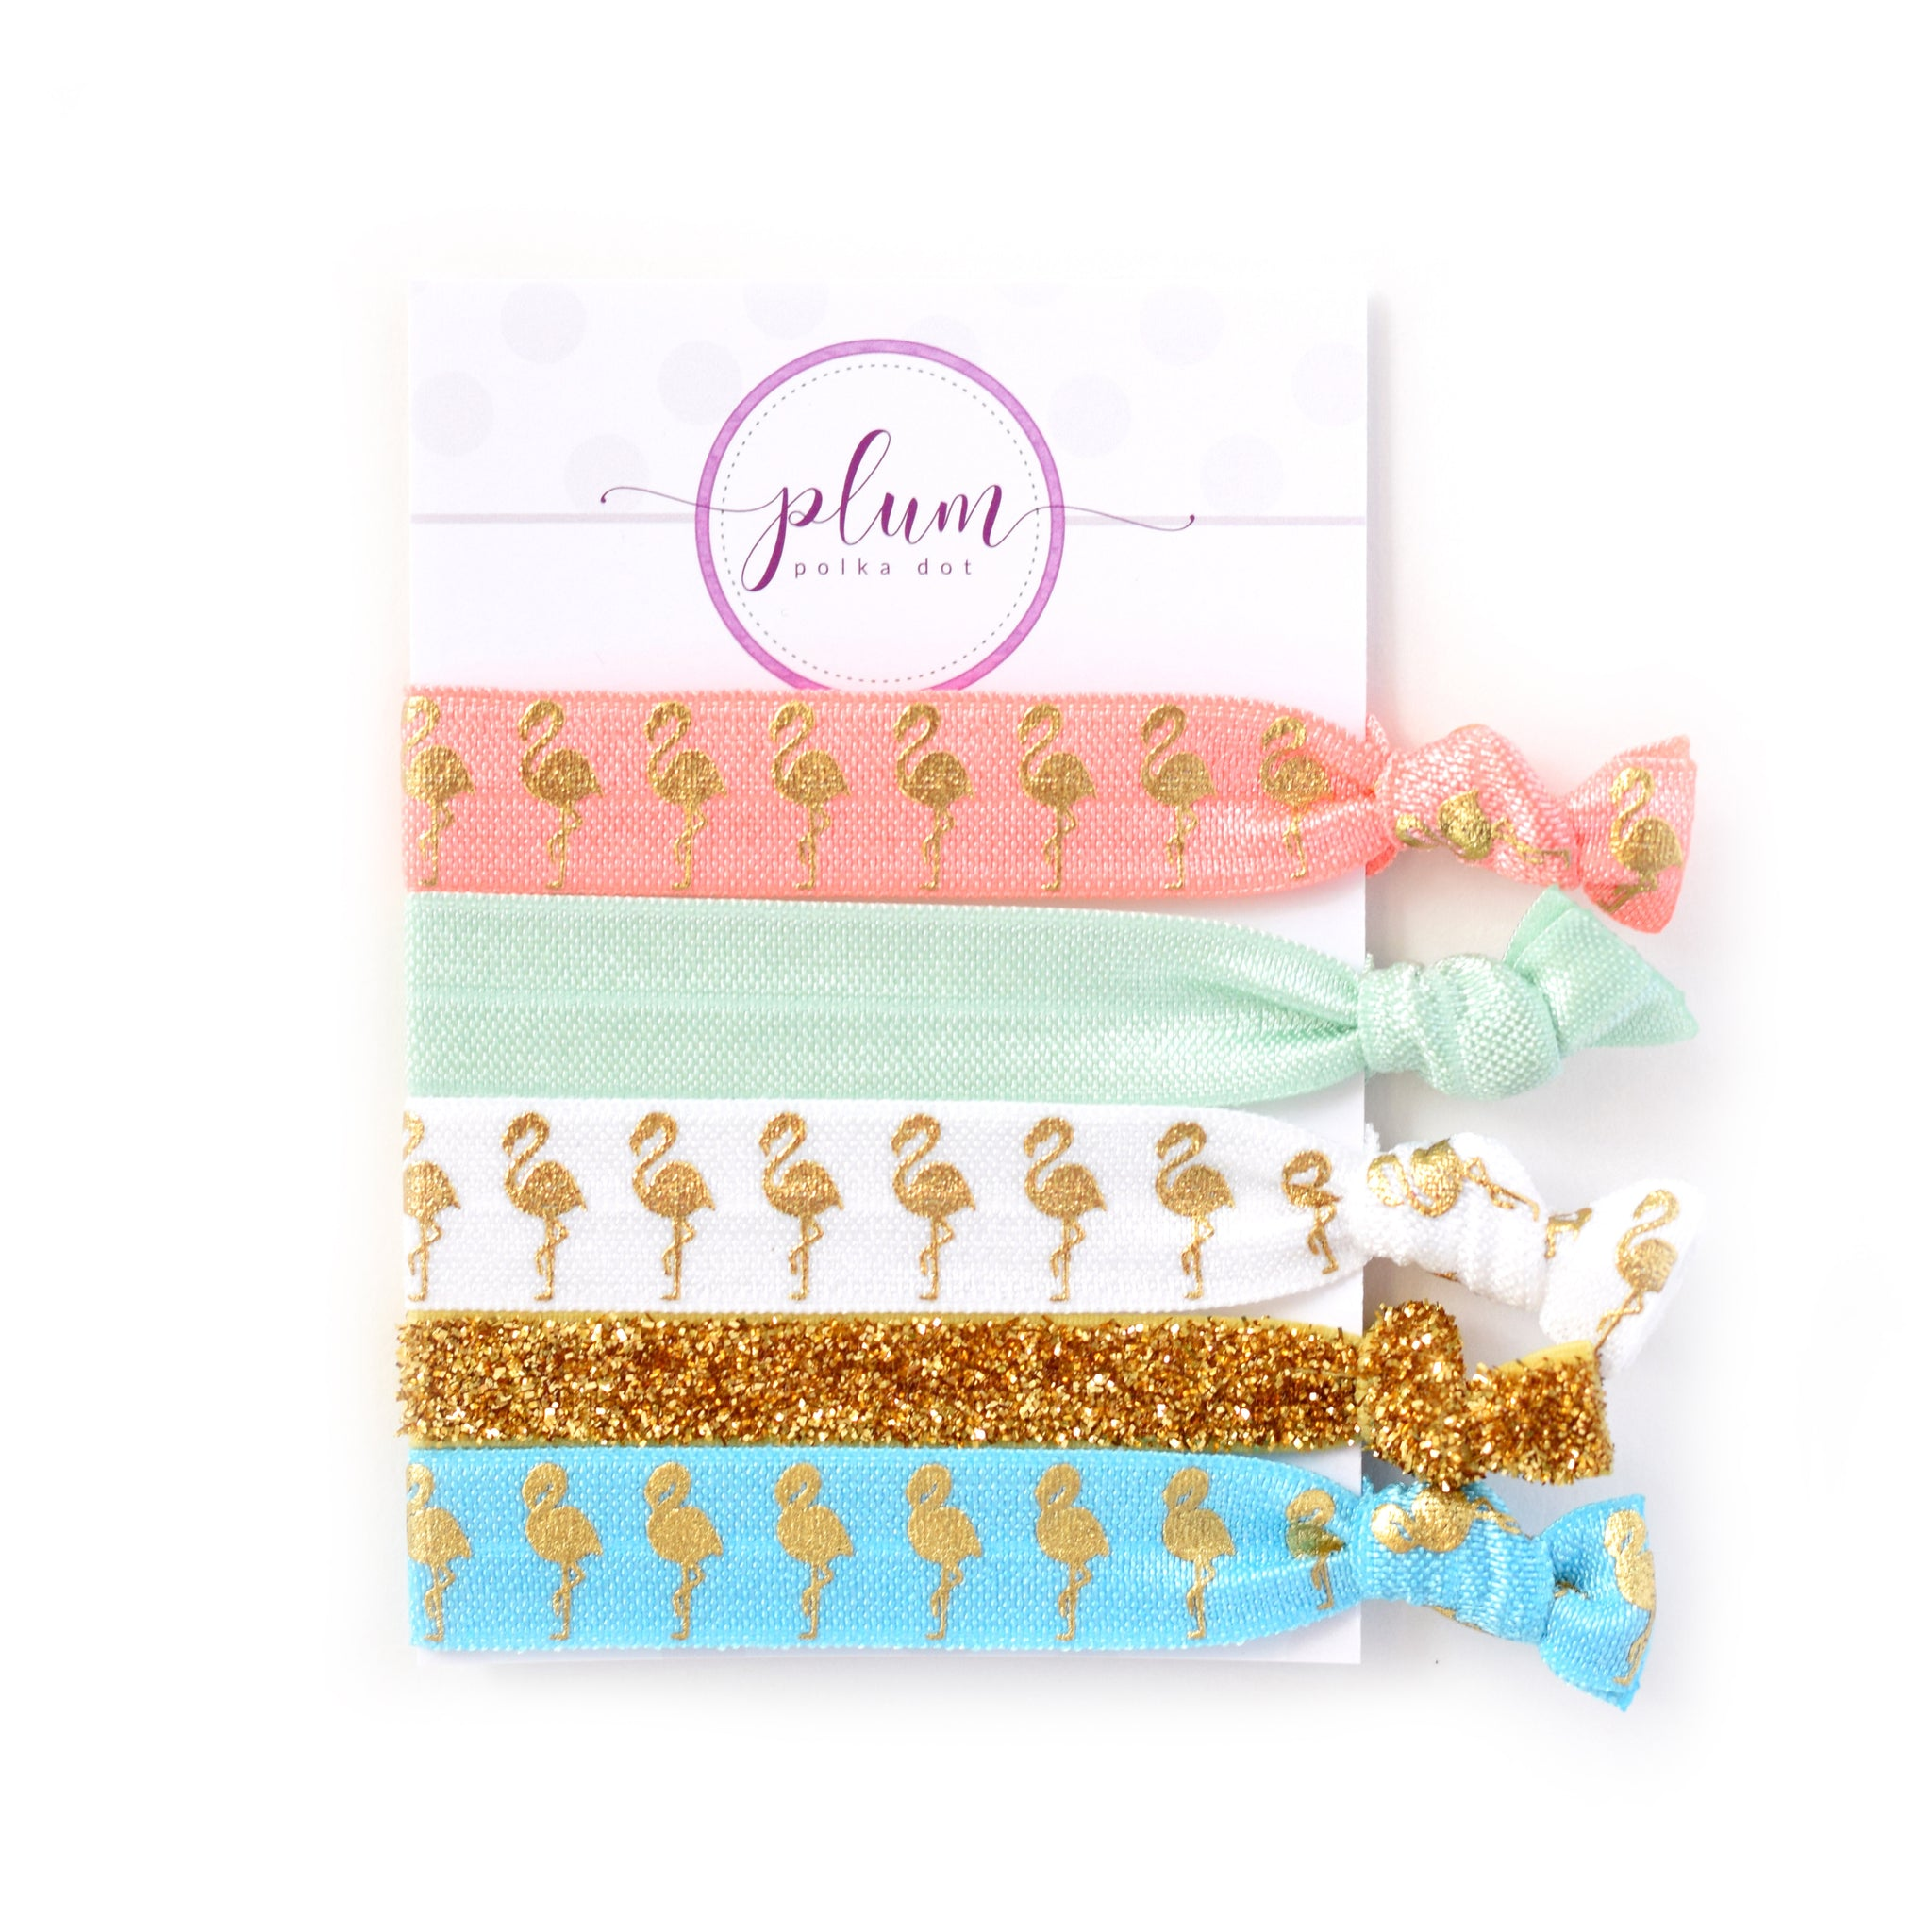 Flamingo Hair Ties - Set of 5 - @PlumPolkaDot